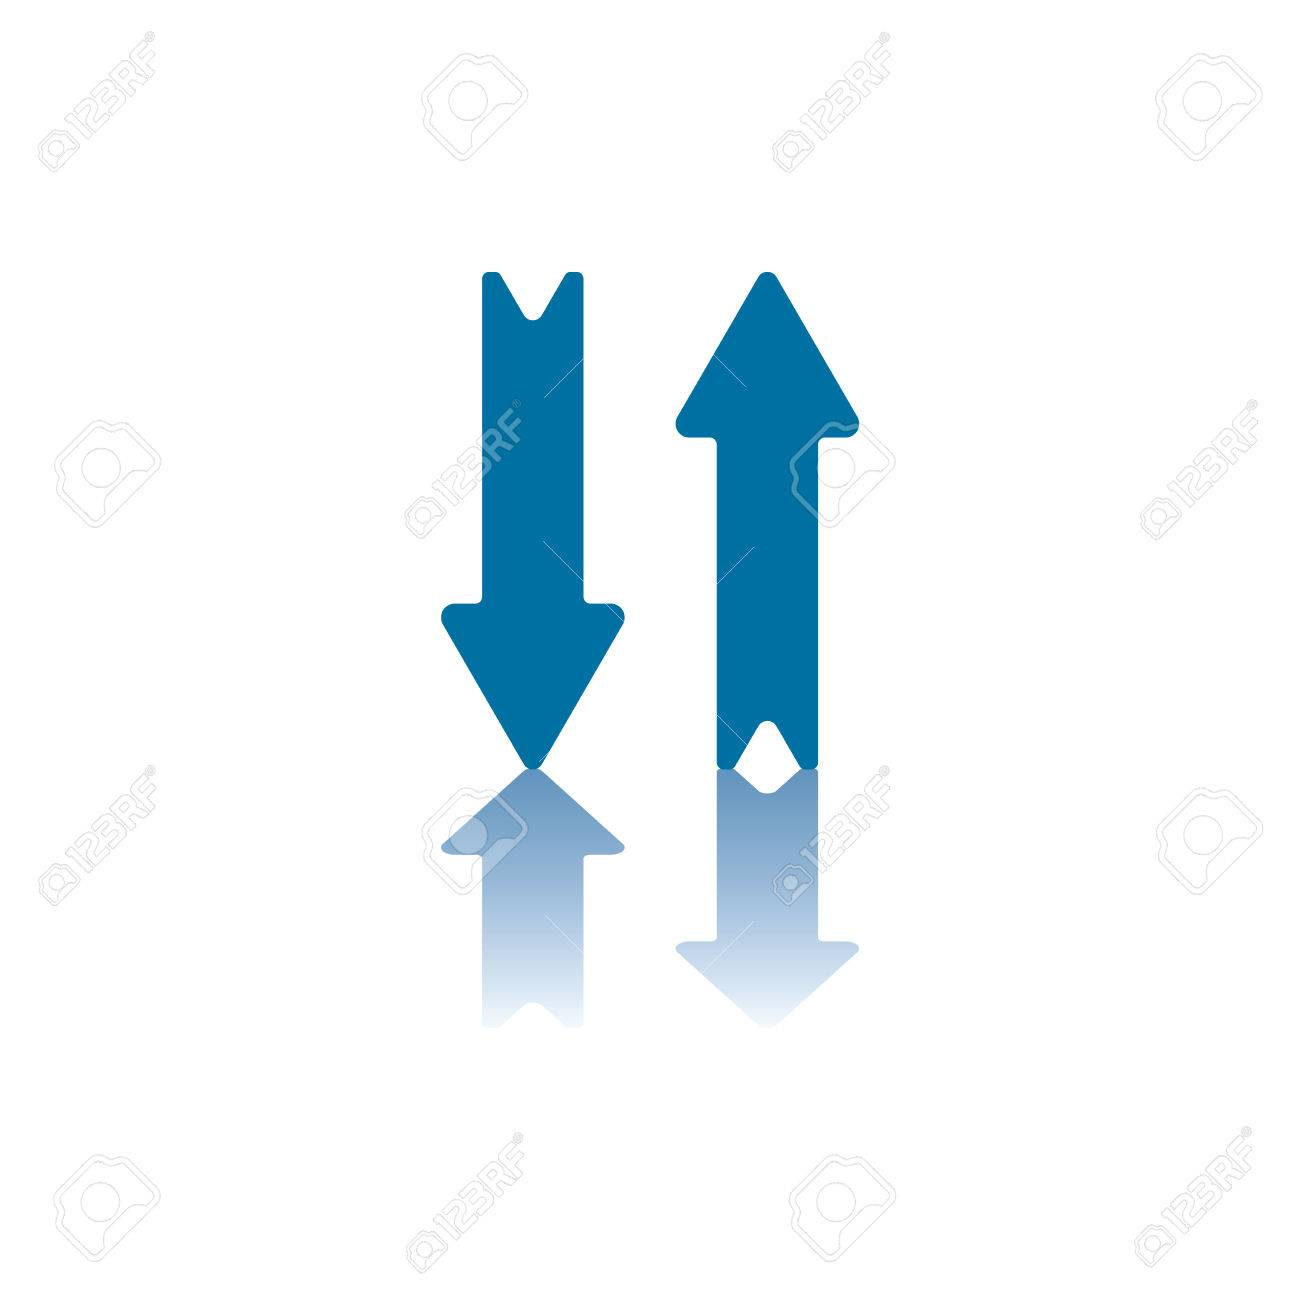 Two Parallel Vertical Arrows Right One Pointing Up Left One